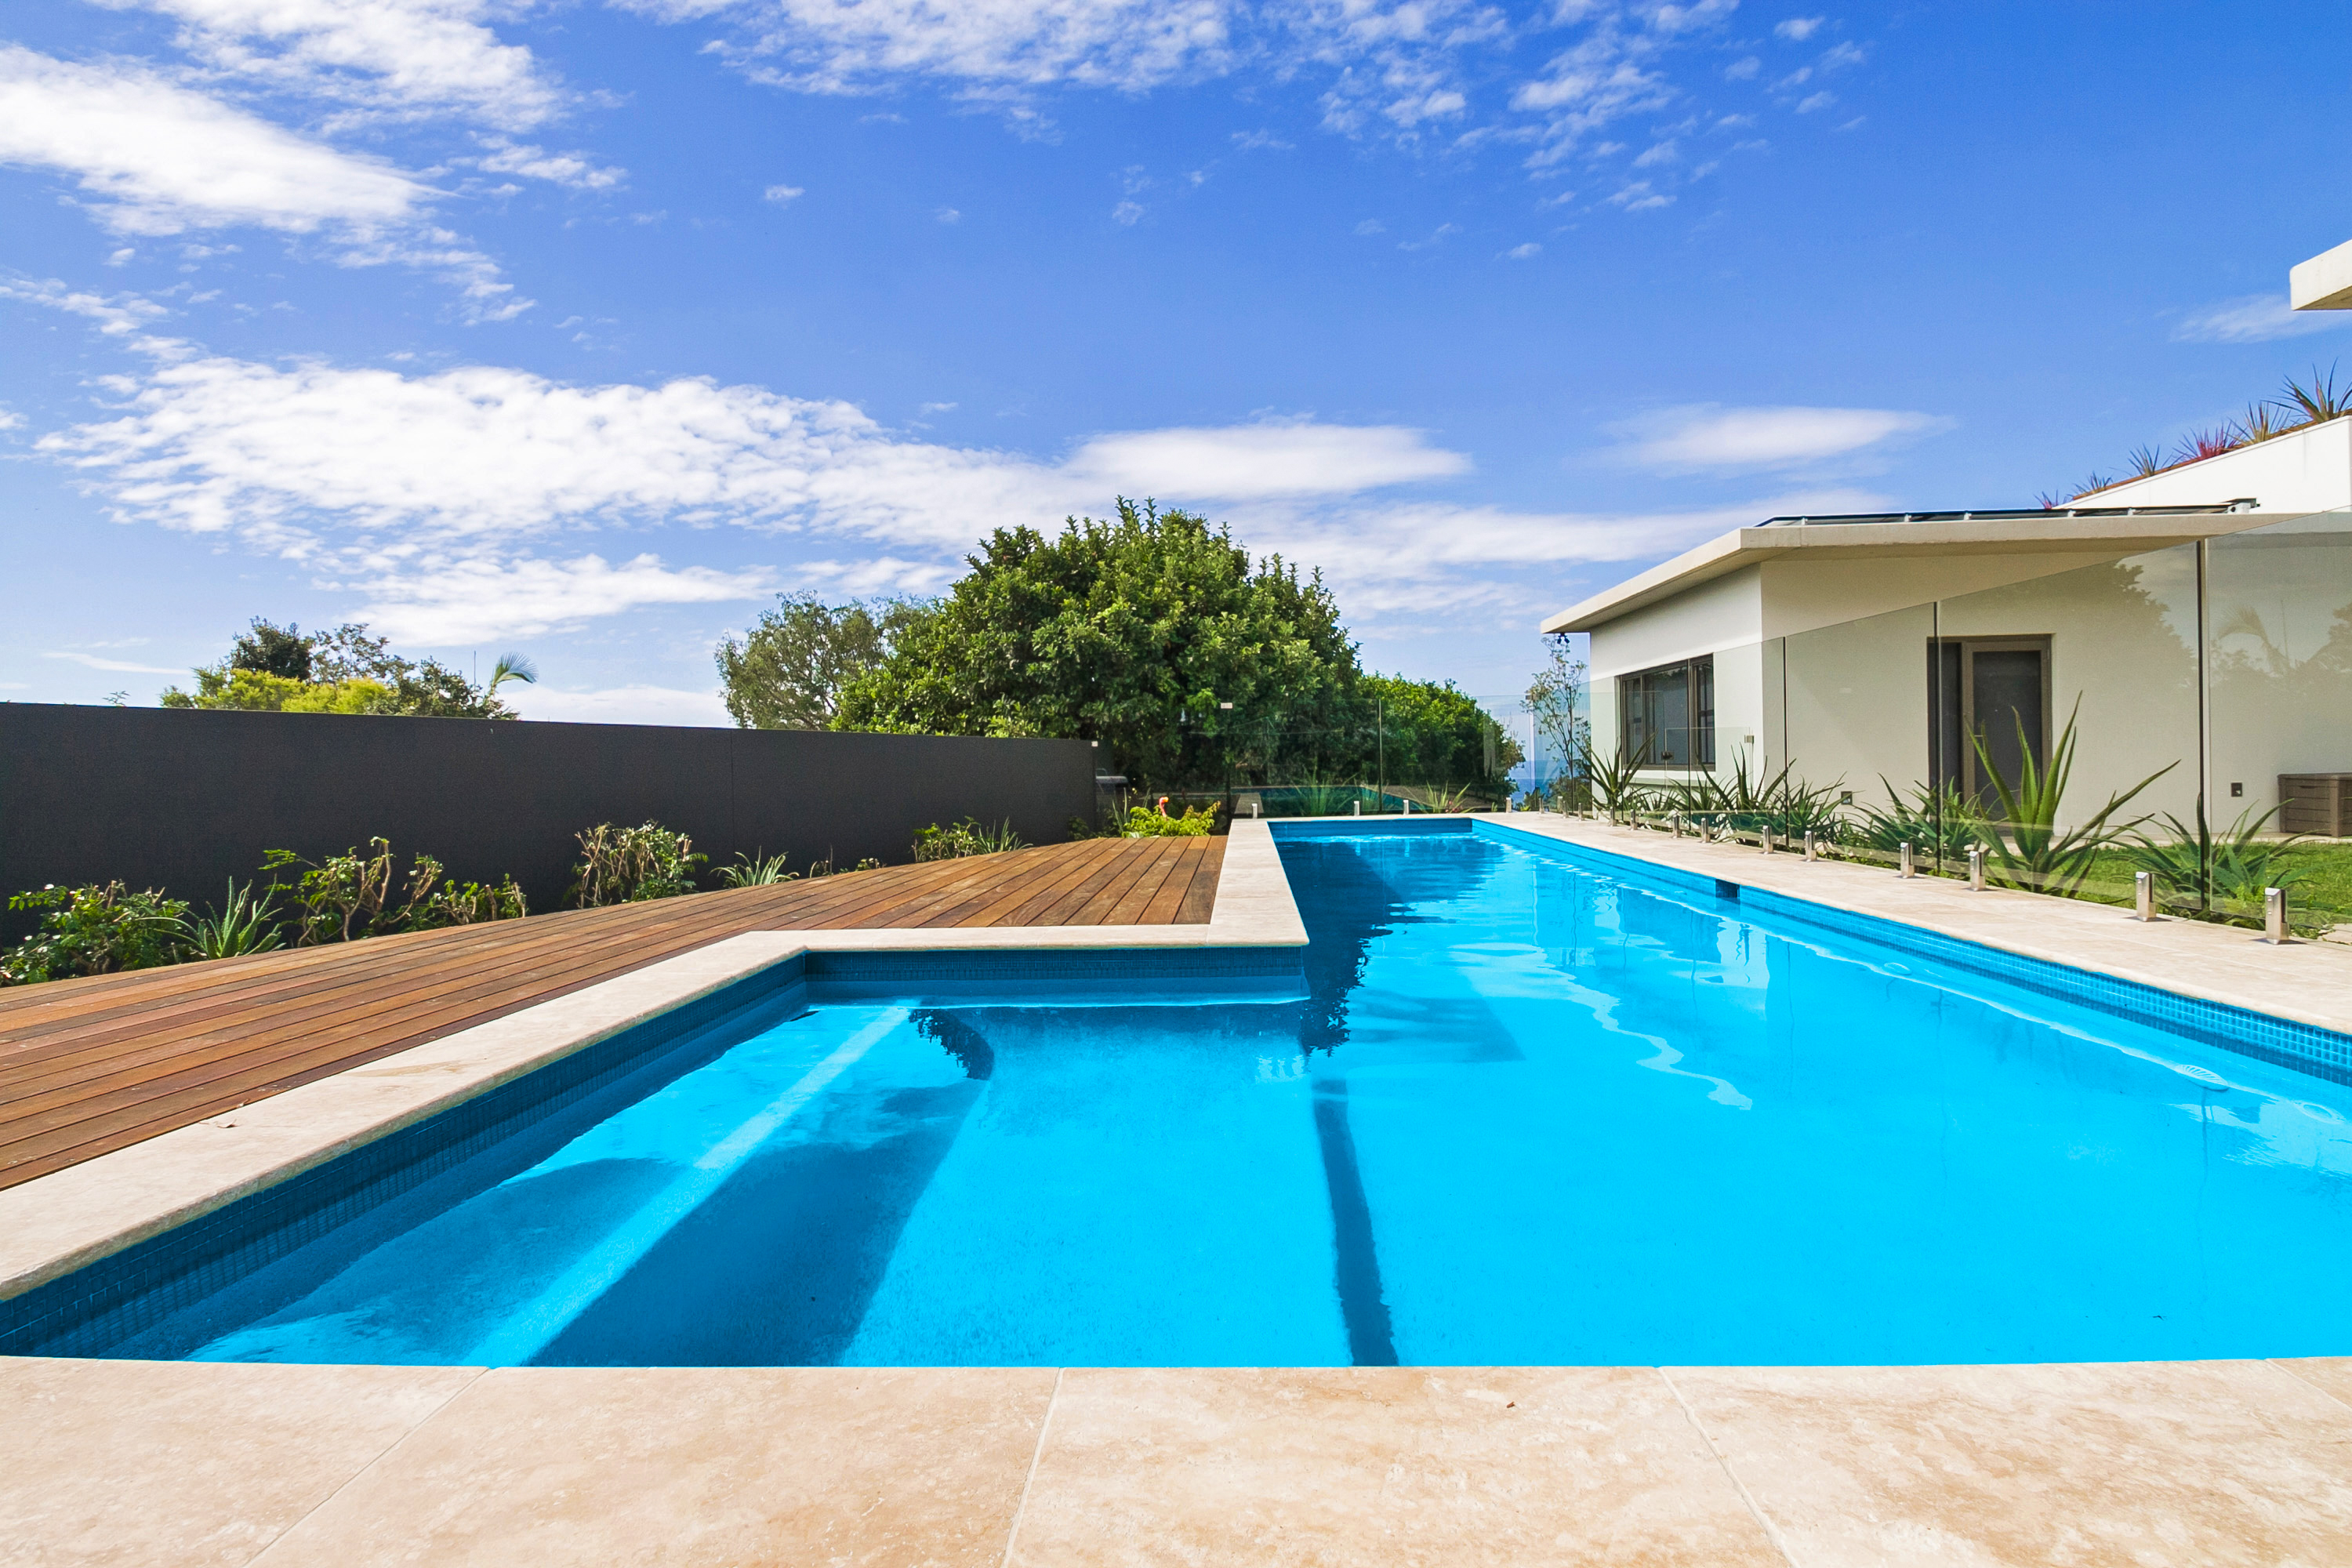 Priority pools sydney pool and outdoor design for Pool design sydney